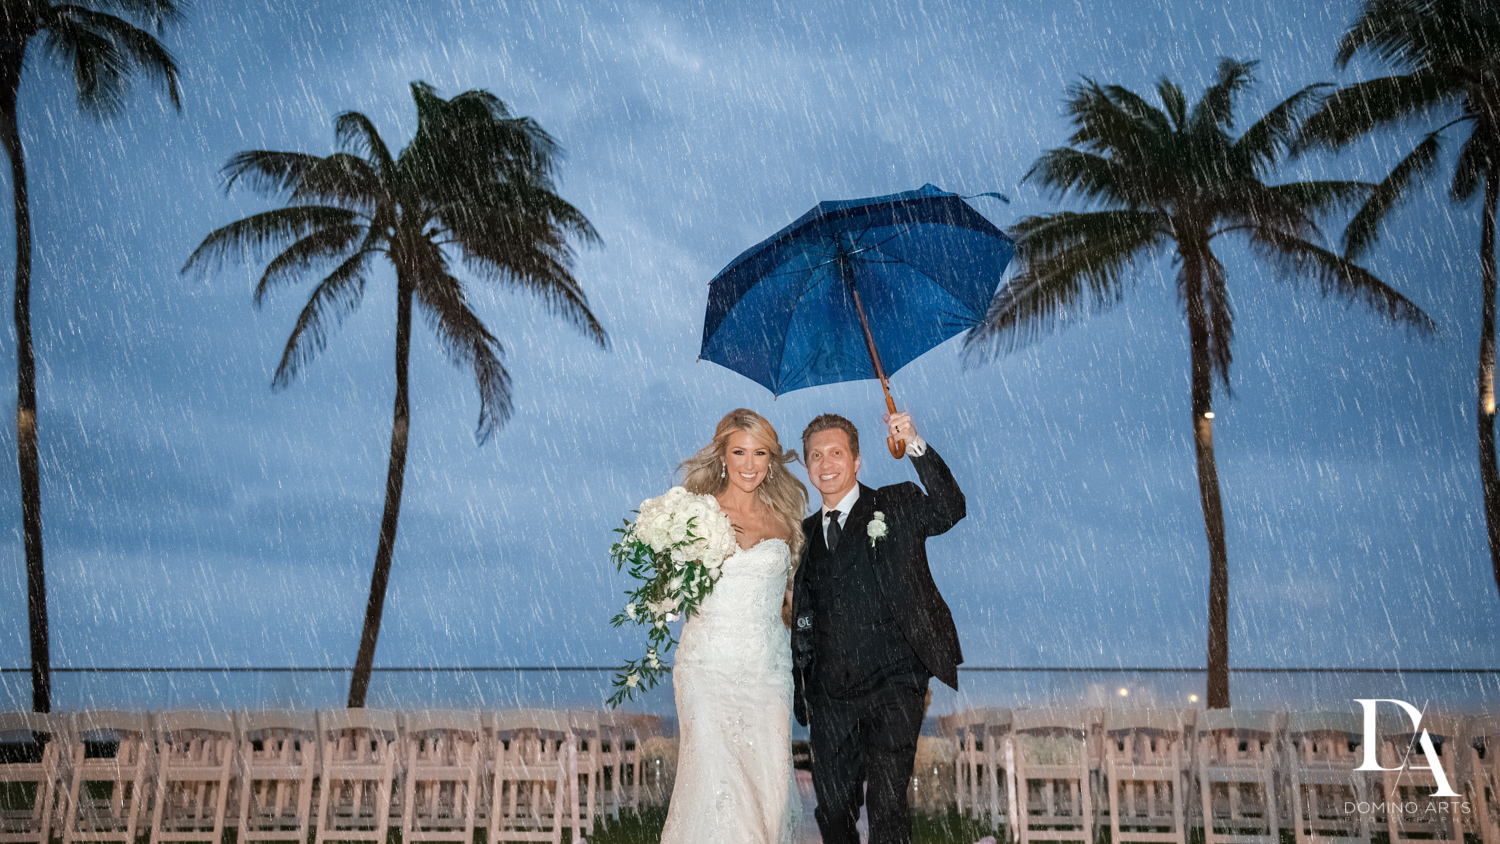 rainy wedding at Extravagant Wedding at The Breakers Palm Beach by Domino Arts Photography